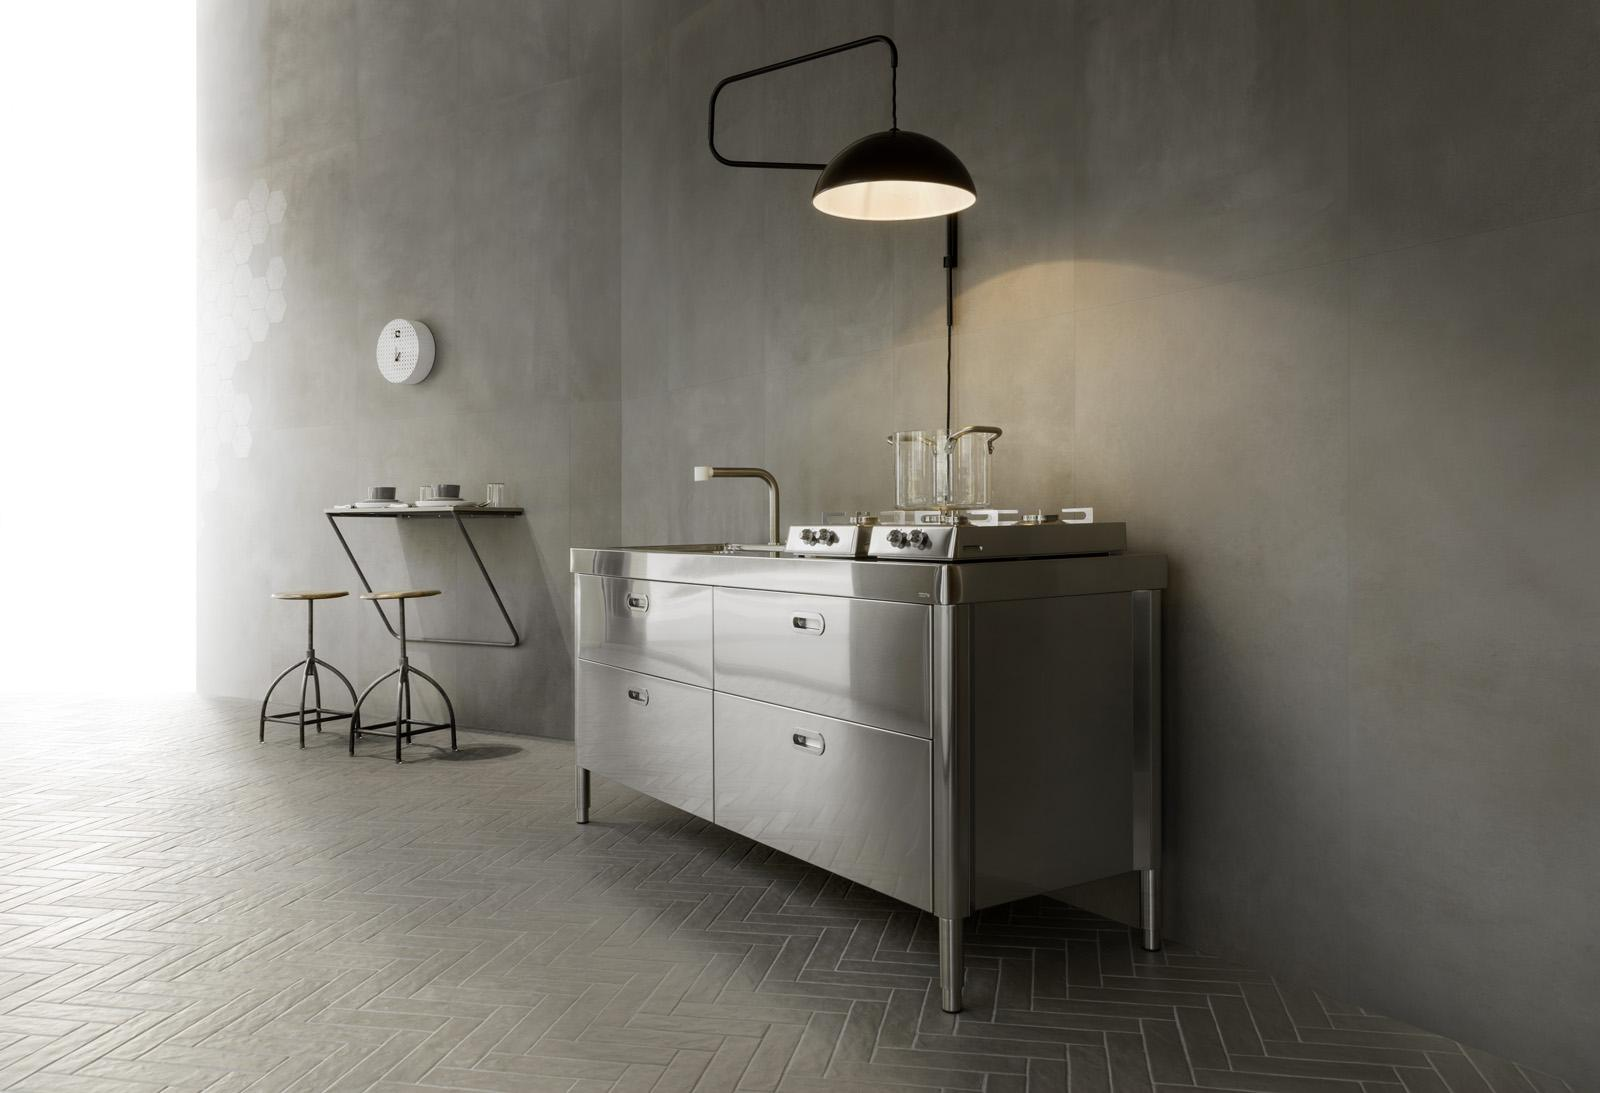 die perfekten wandfliesen f r die k che im industrial style marazzi. Black Bedroom Furniture Sets. Home Design Ideas